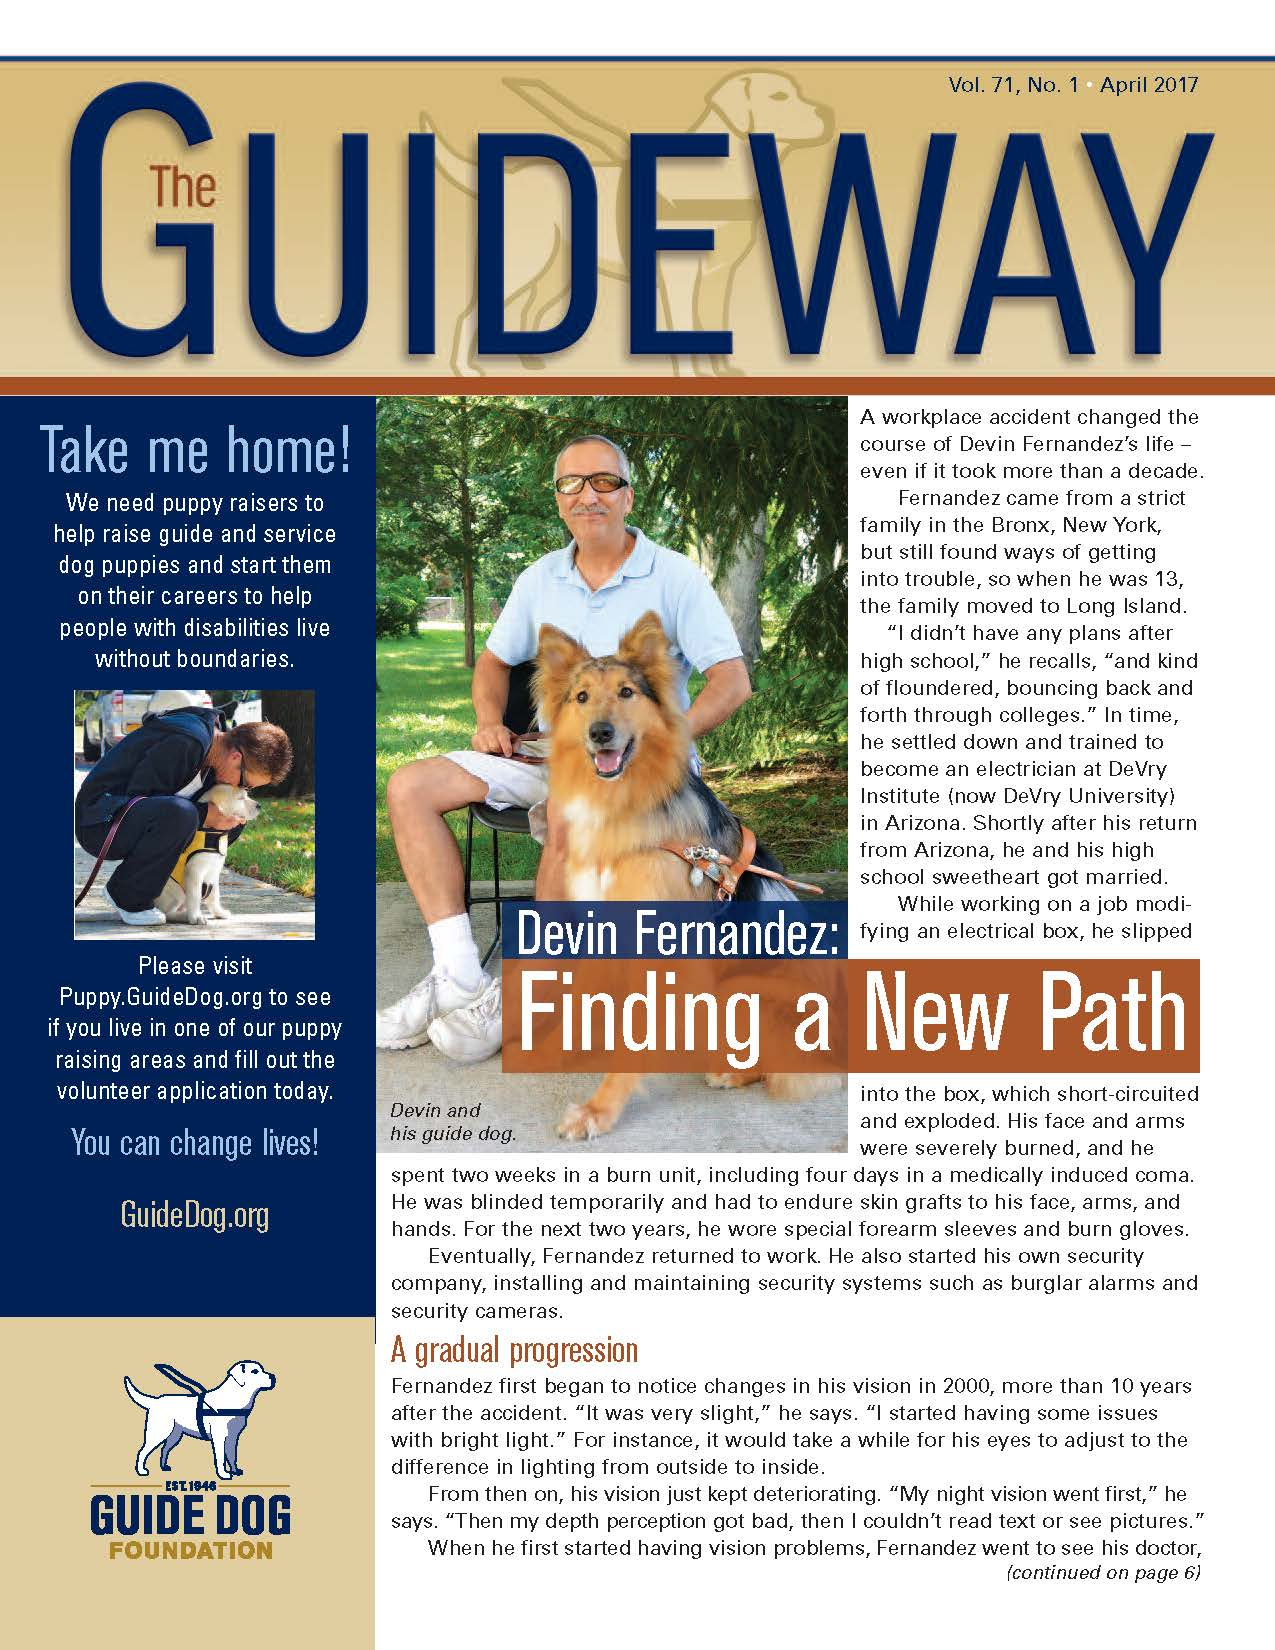 Cover of latest Guideway newsletter.